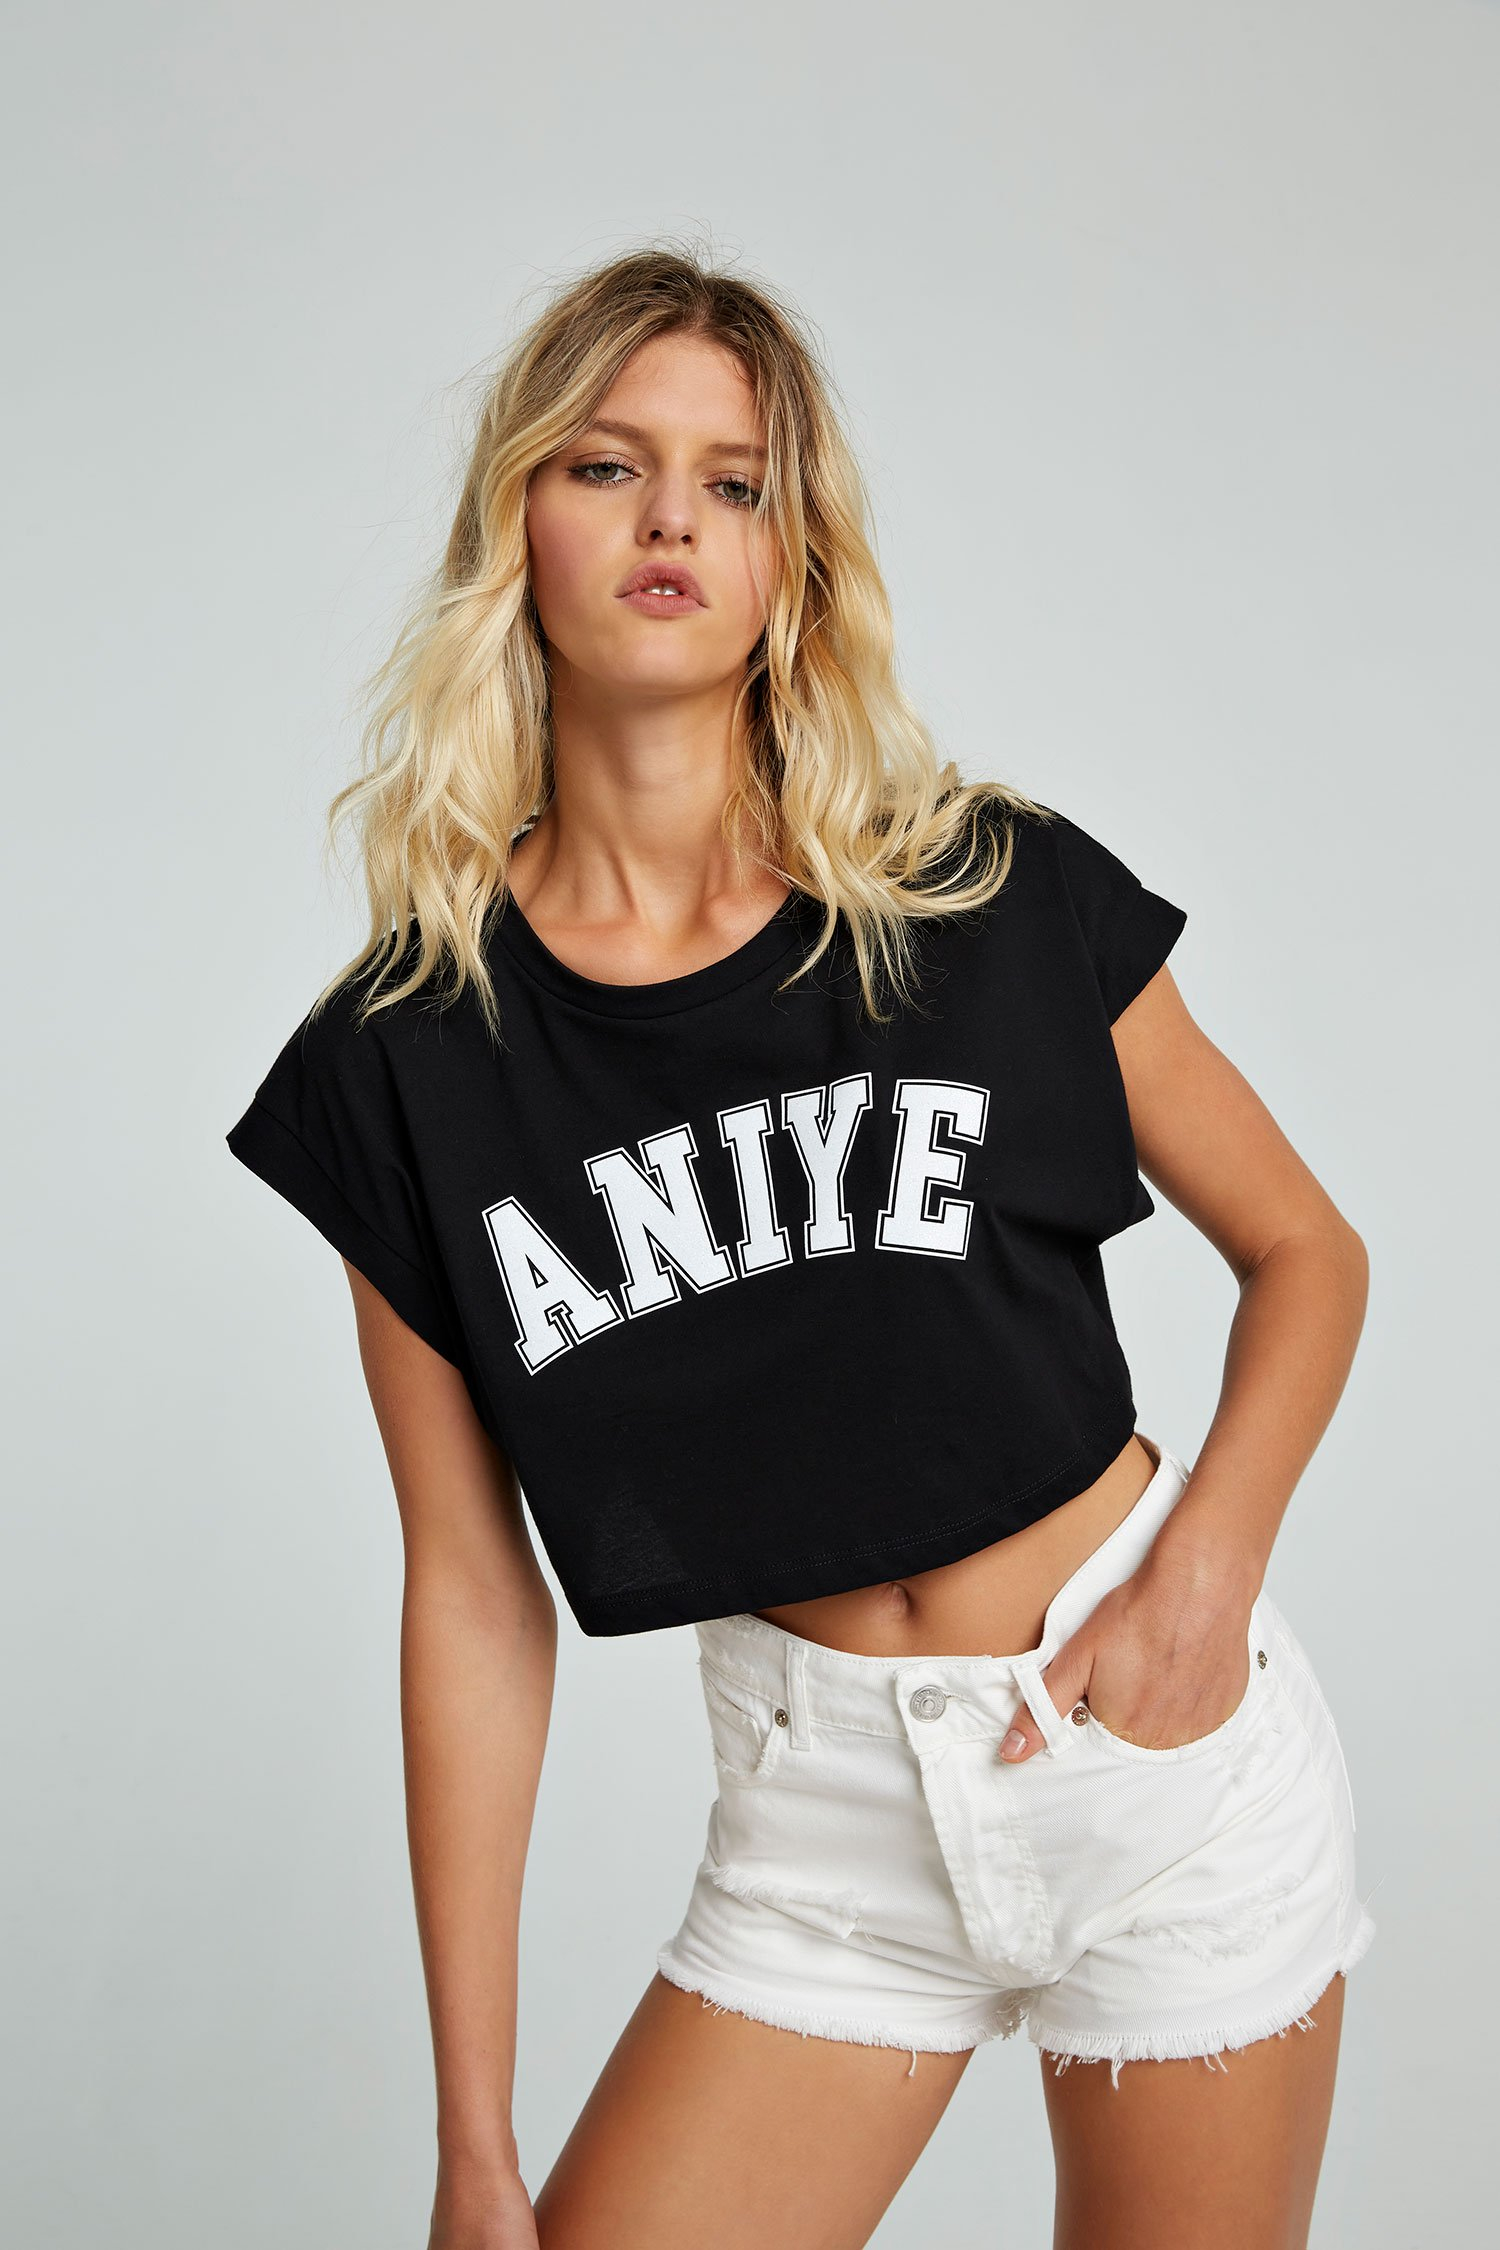 SHOPPING ON LINE ANIYE BY CROP TOP KERNEW COLLECTION WOMEN'S SPRING SUMMER 2021